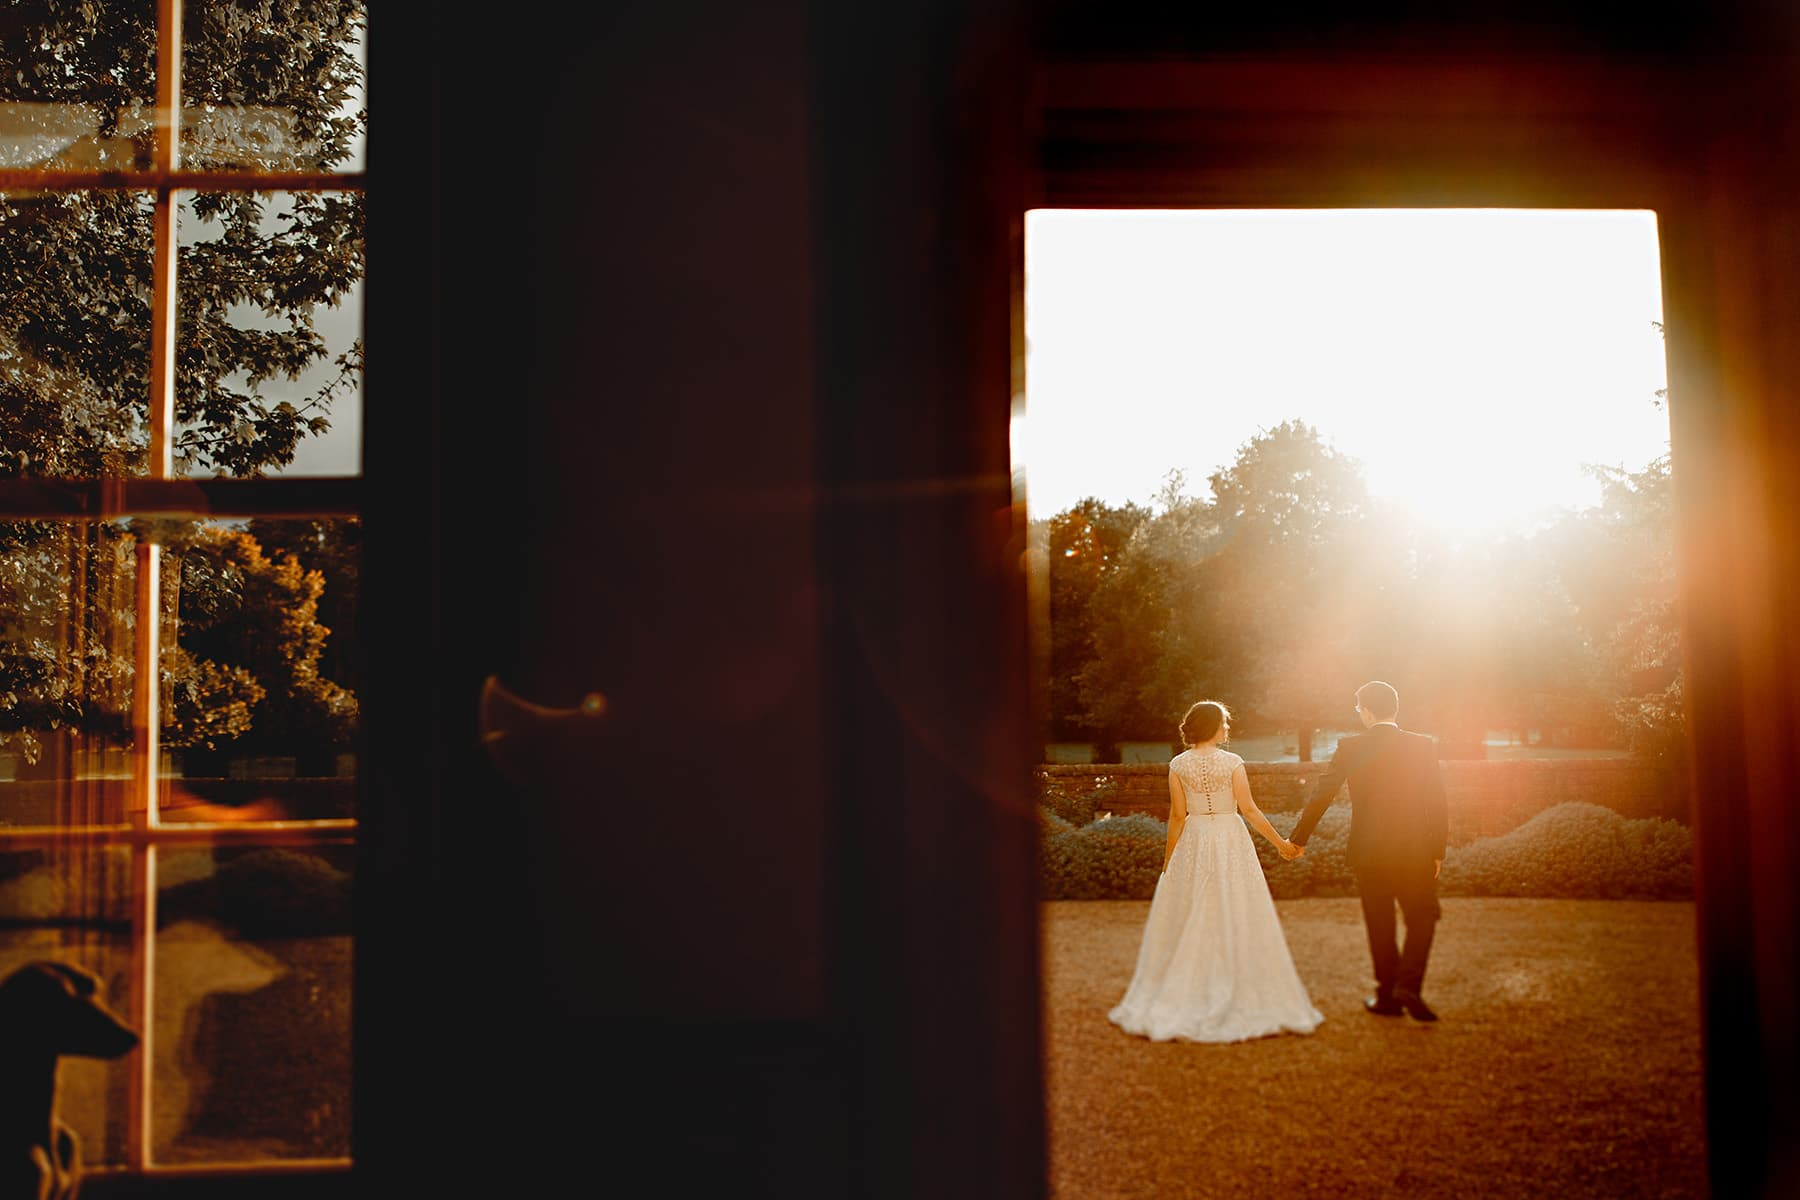 the bride and groom walking off in golden sunshine at the wedding venue